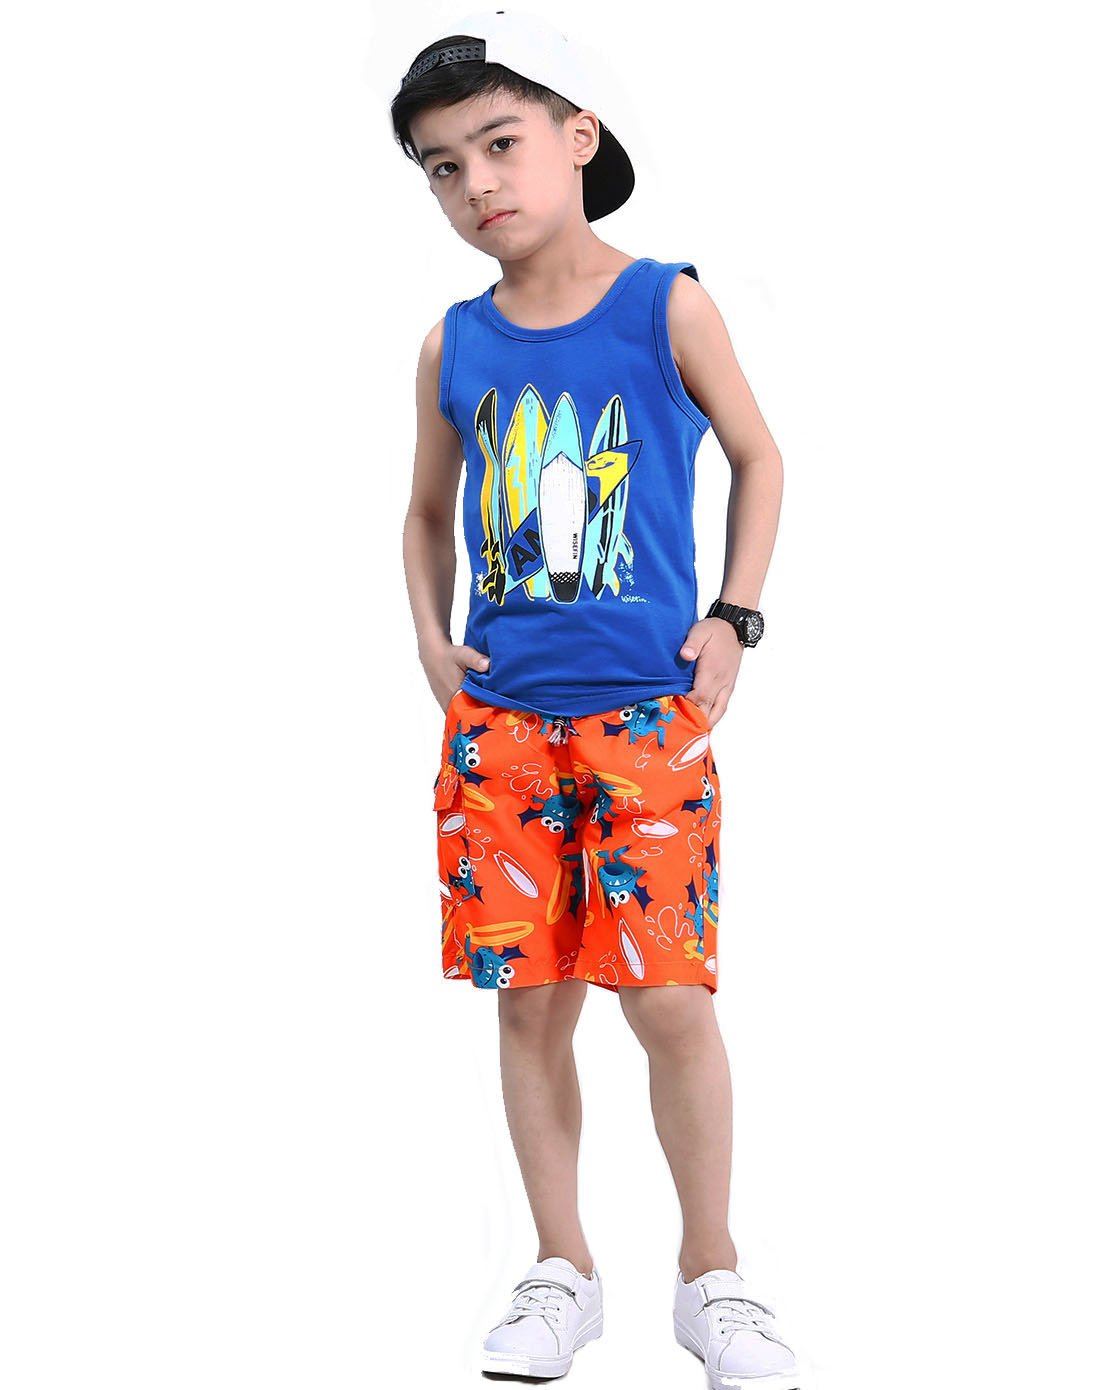 Boys Cotton Vest Set Multi-Color Variety Summer Casual Suit for Kids 5-17Years (Blue Aircraft, 12years)